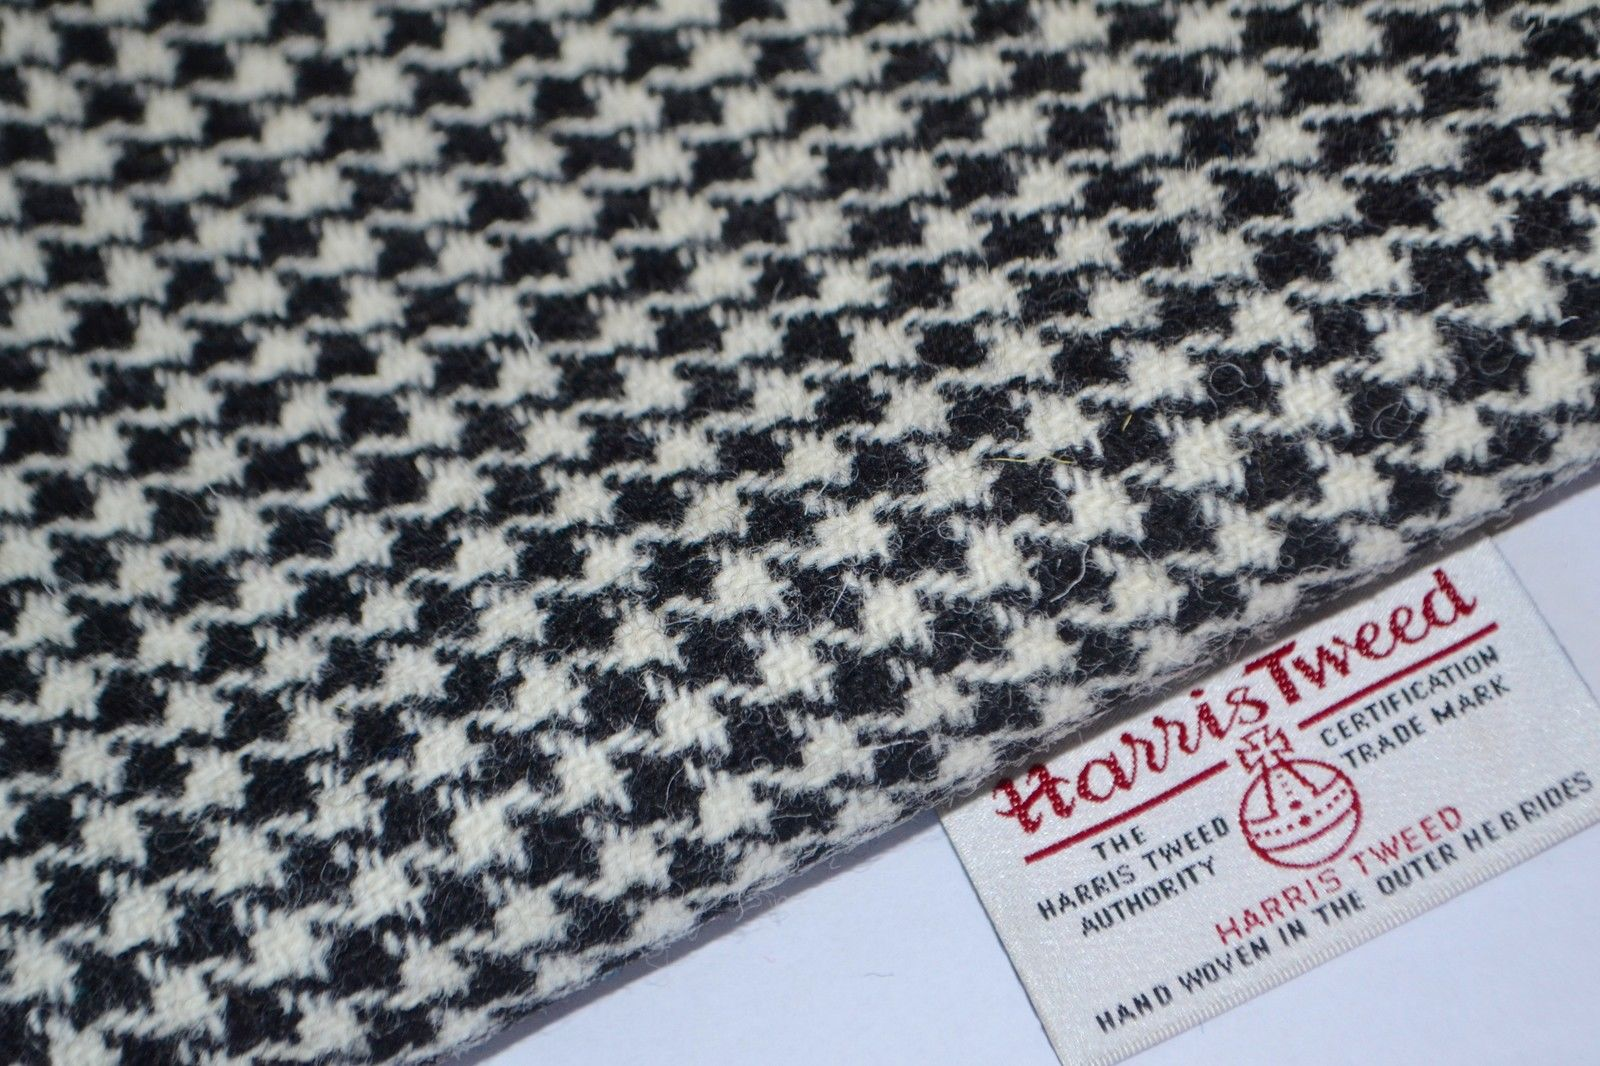 Harris Tweed Fabric Labels Black White Houndstoot Craft Upholstery Tailoring